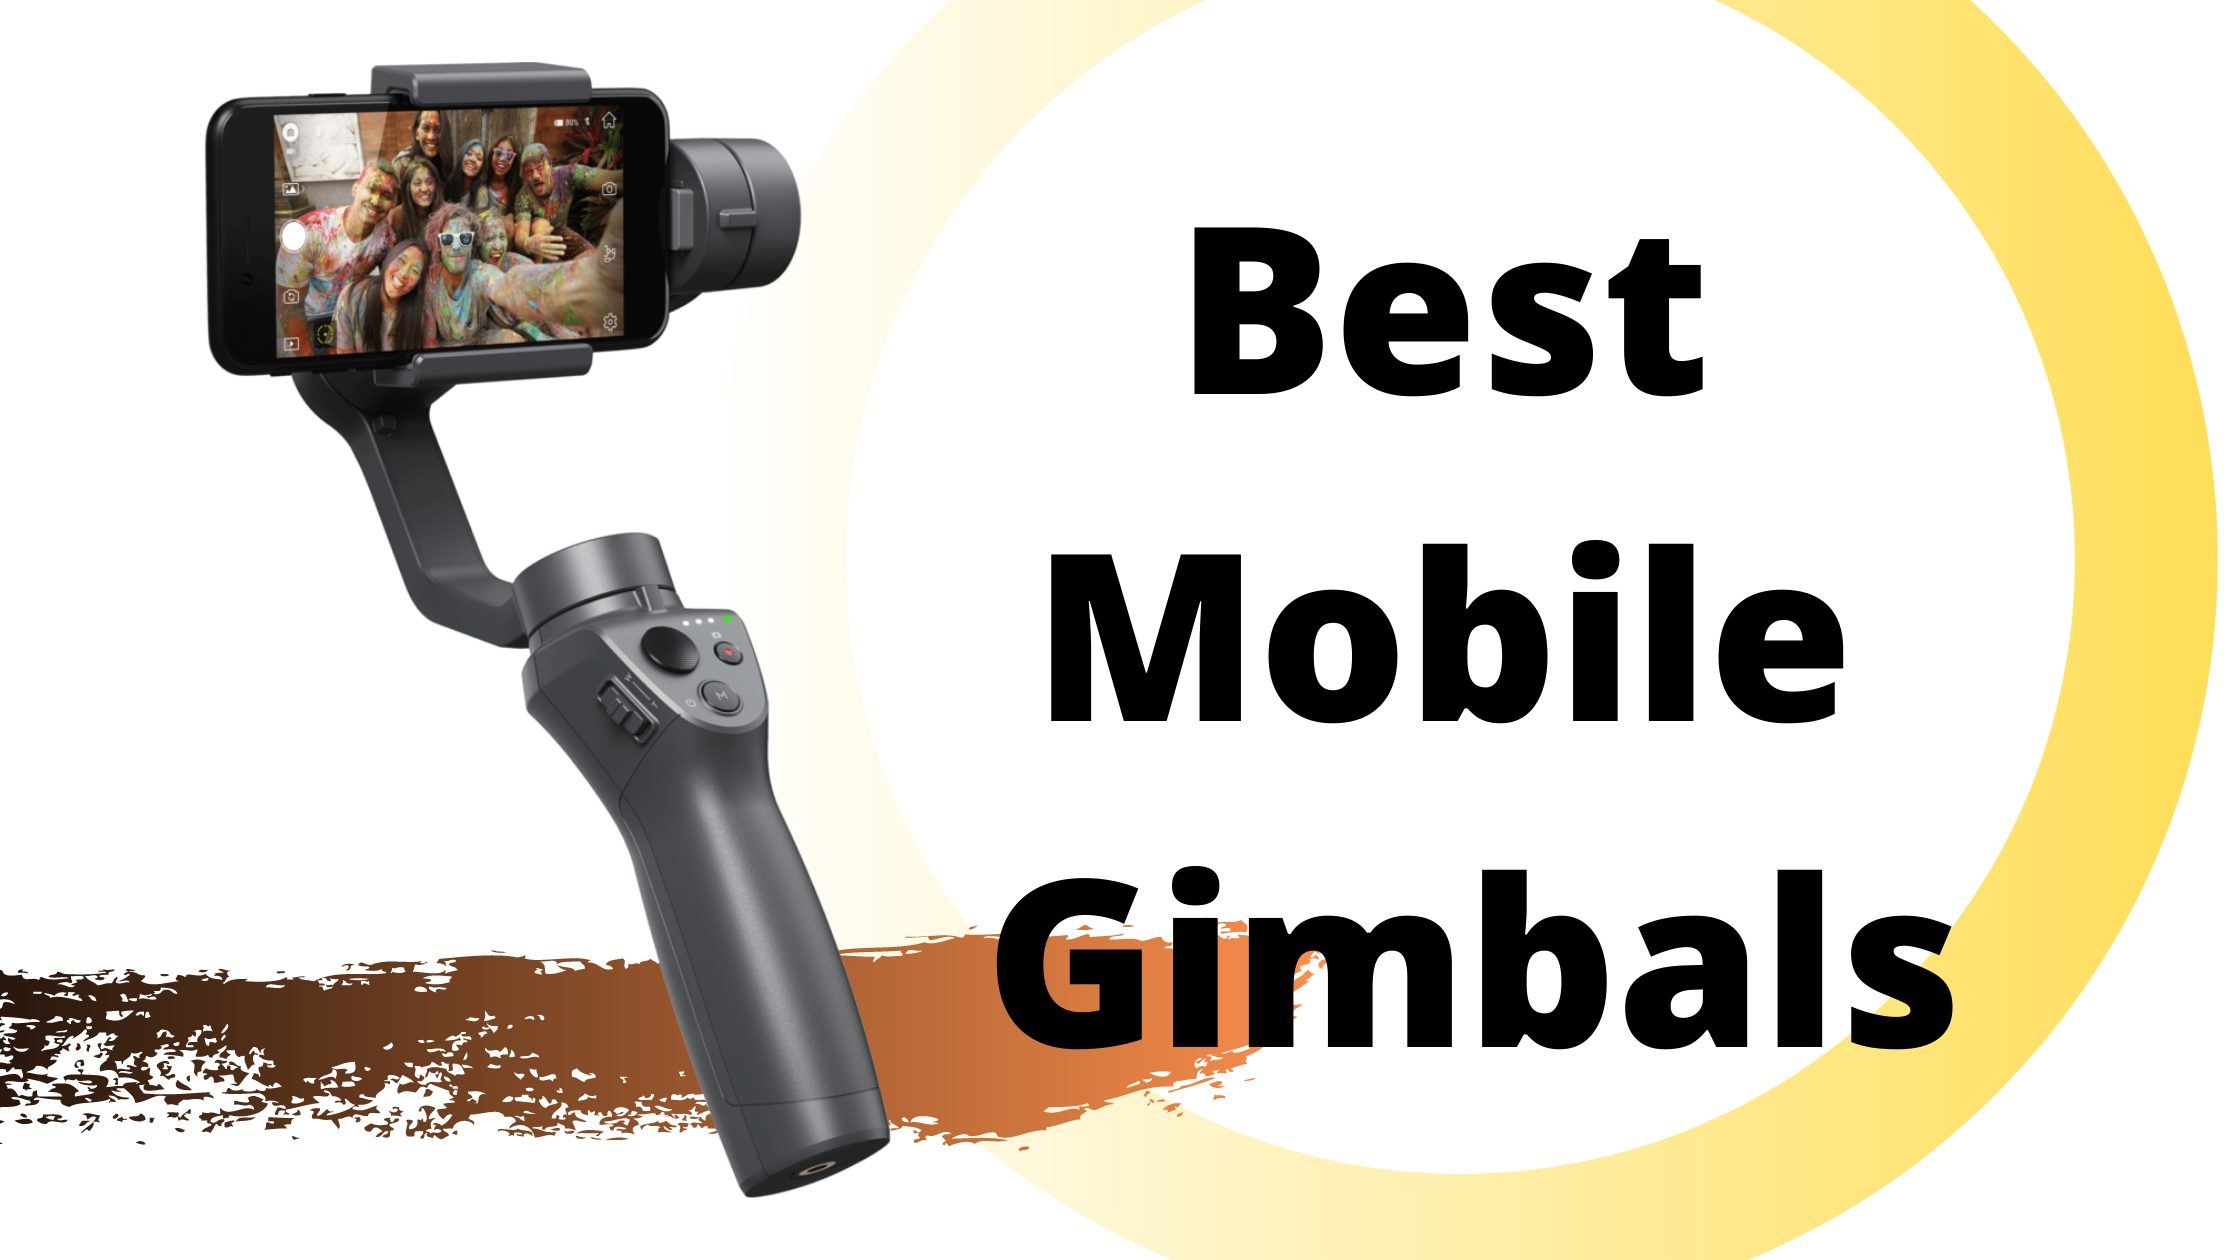 Best Mobile Gimbals